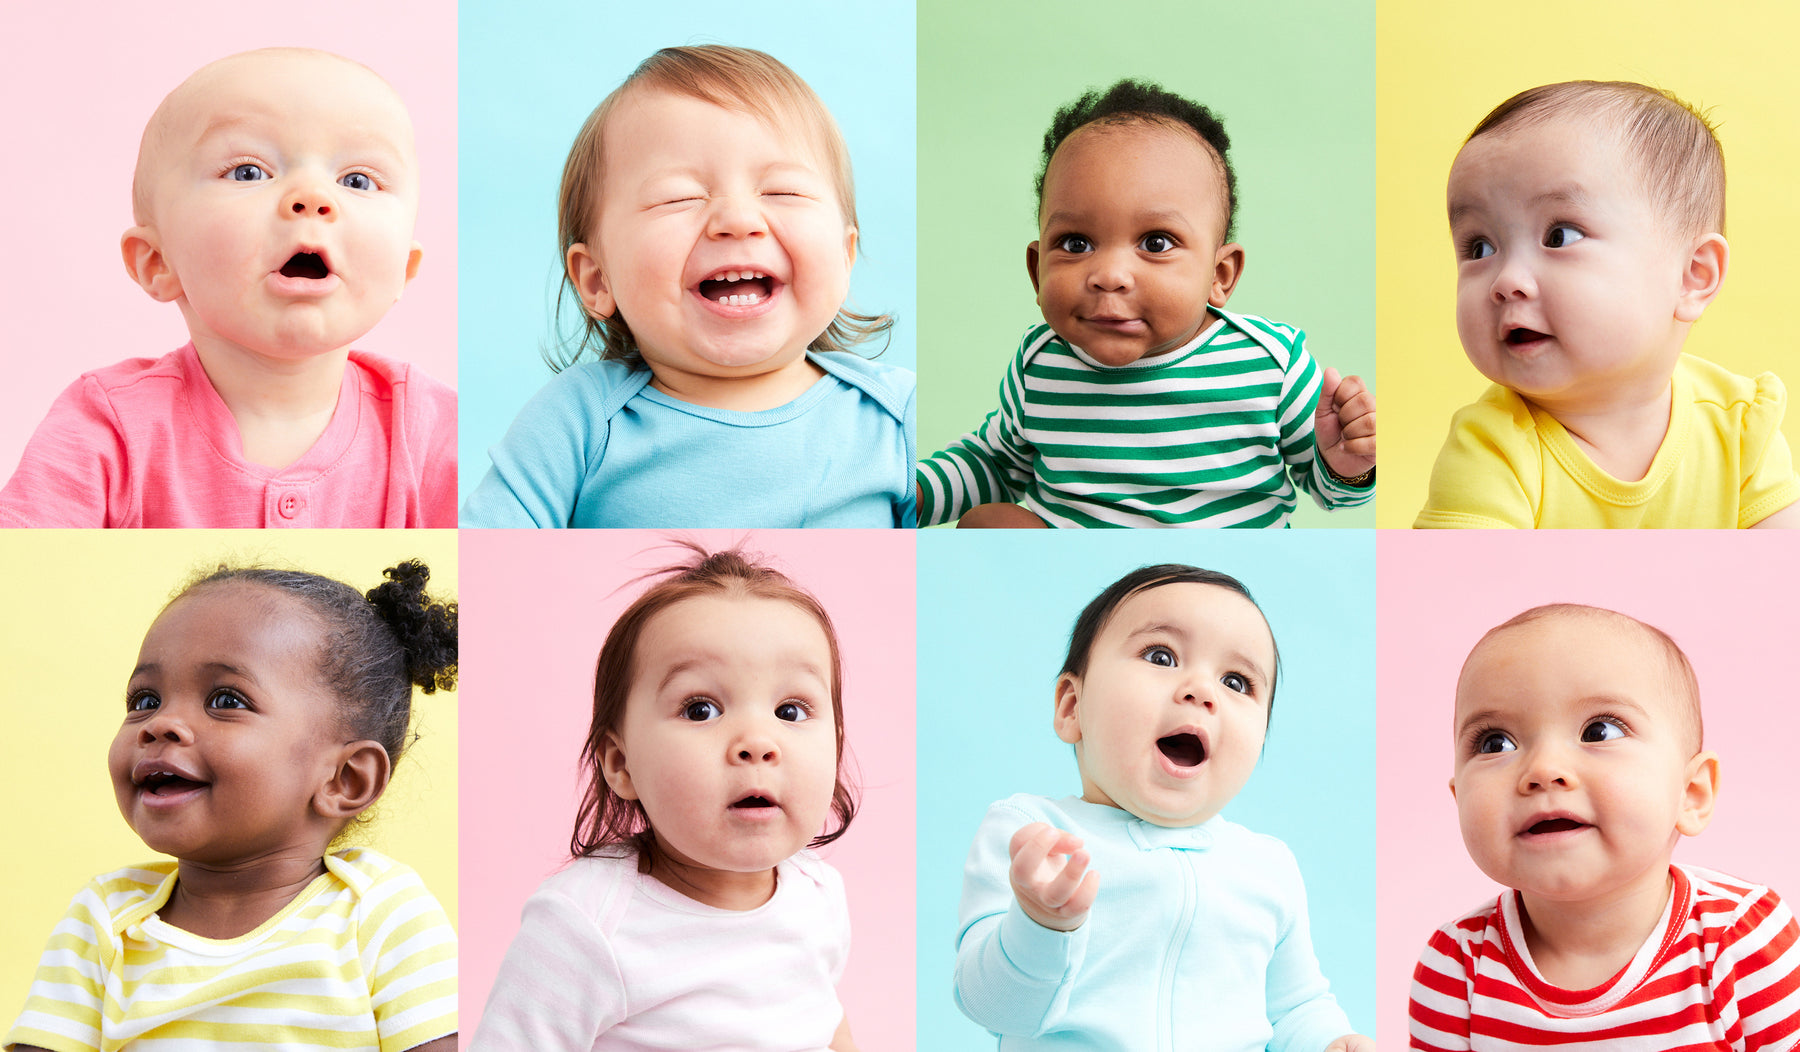 collage of close up portraits of baby boys and girls in colorful clothing on colorful backgrounds